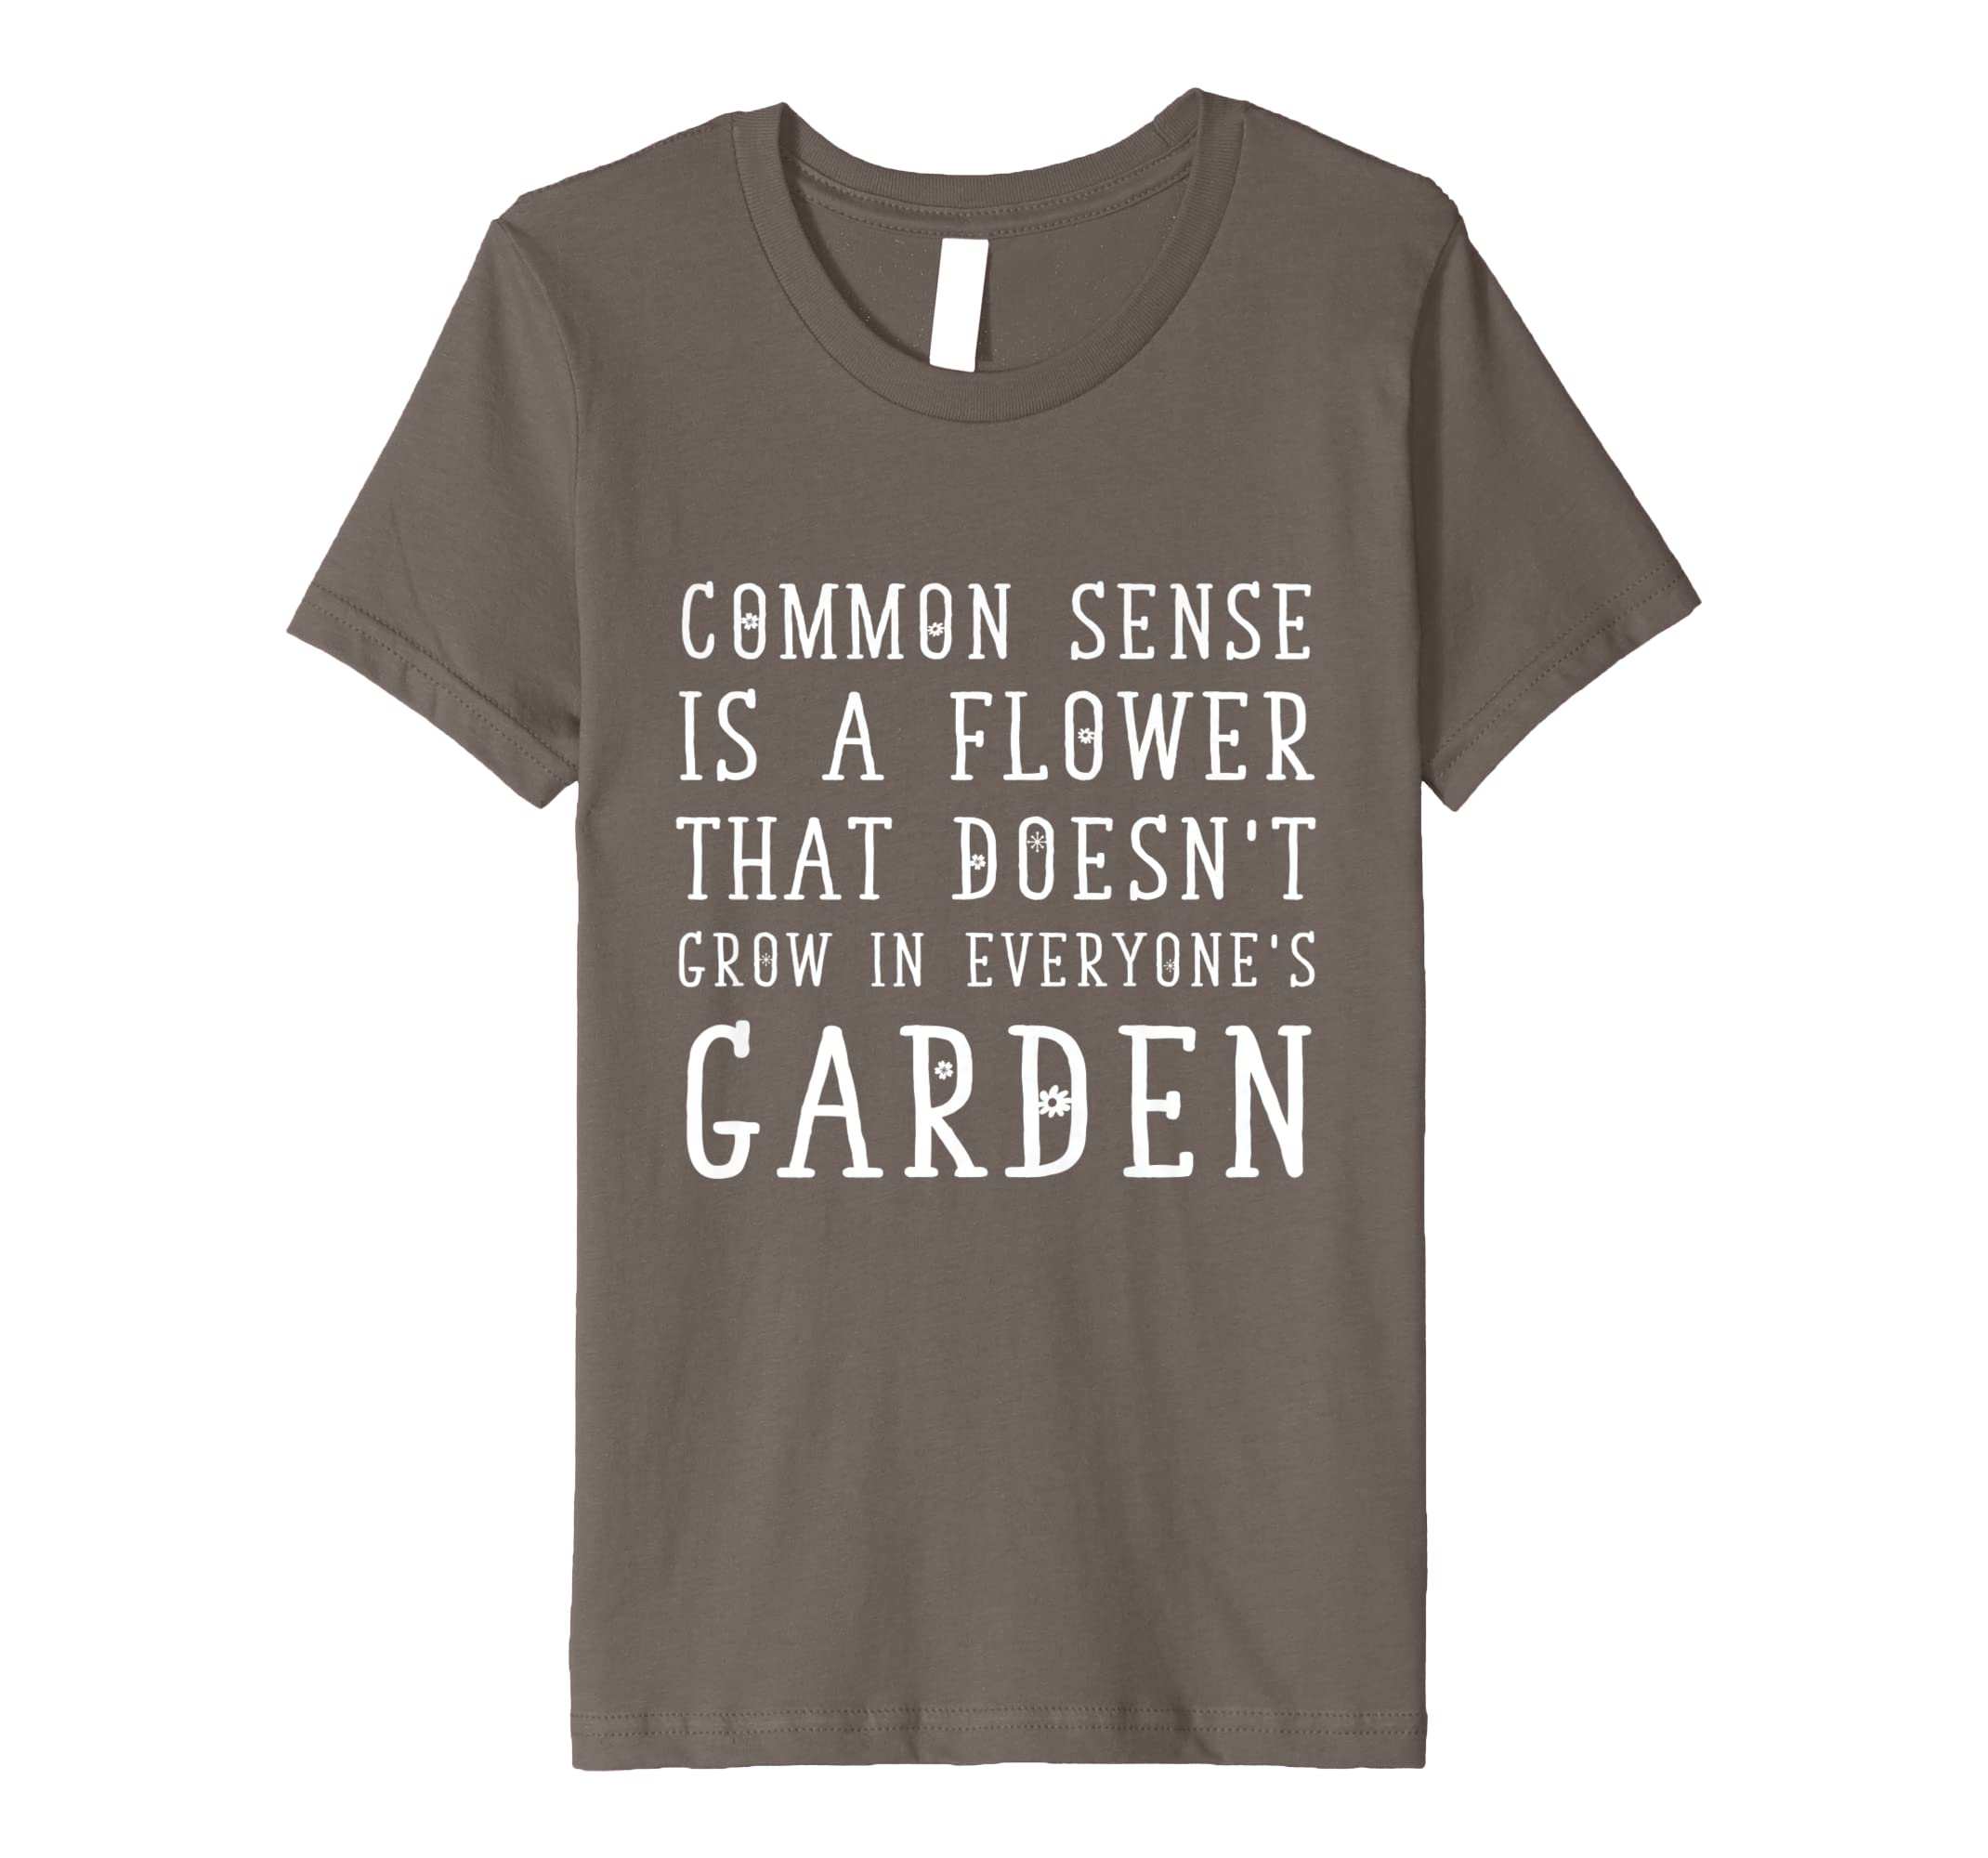 b4eb5983 Amazon.com: Common Sense Is A Flower Doesn't Grow In Everyone's Garden:  Clothing